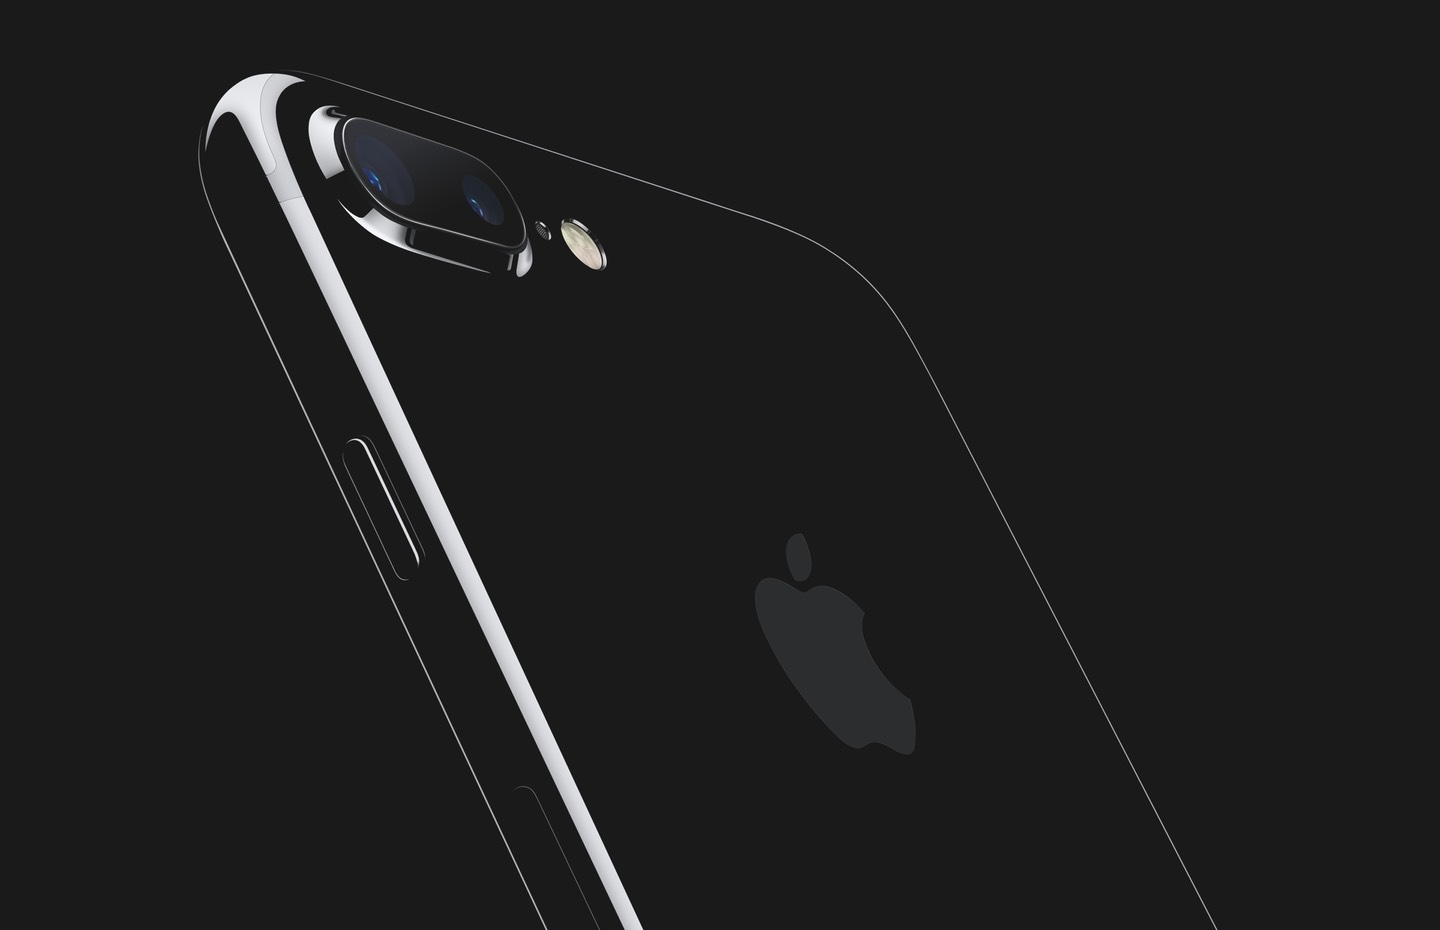 Apple promotional photo of a jet back iPhone 7 Plus.